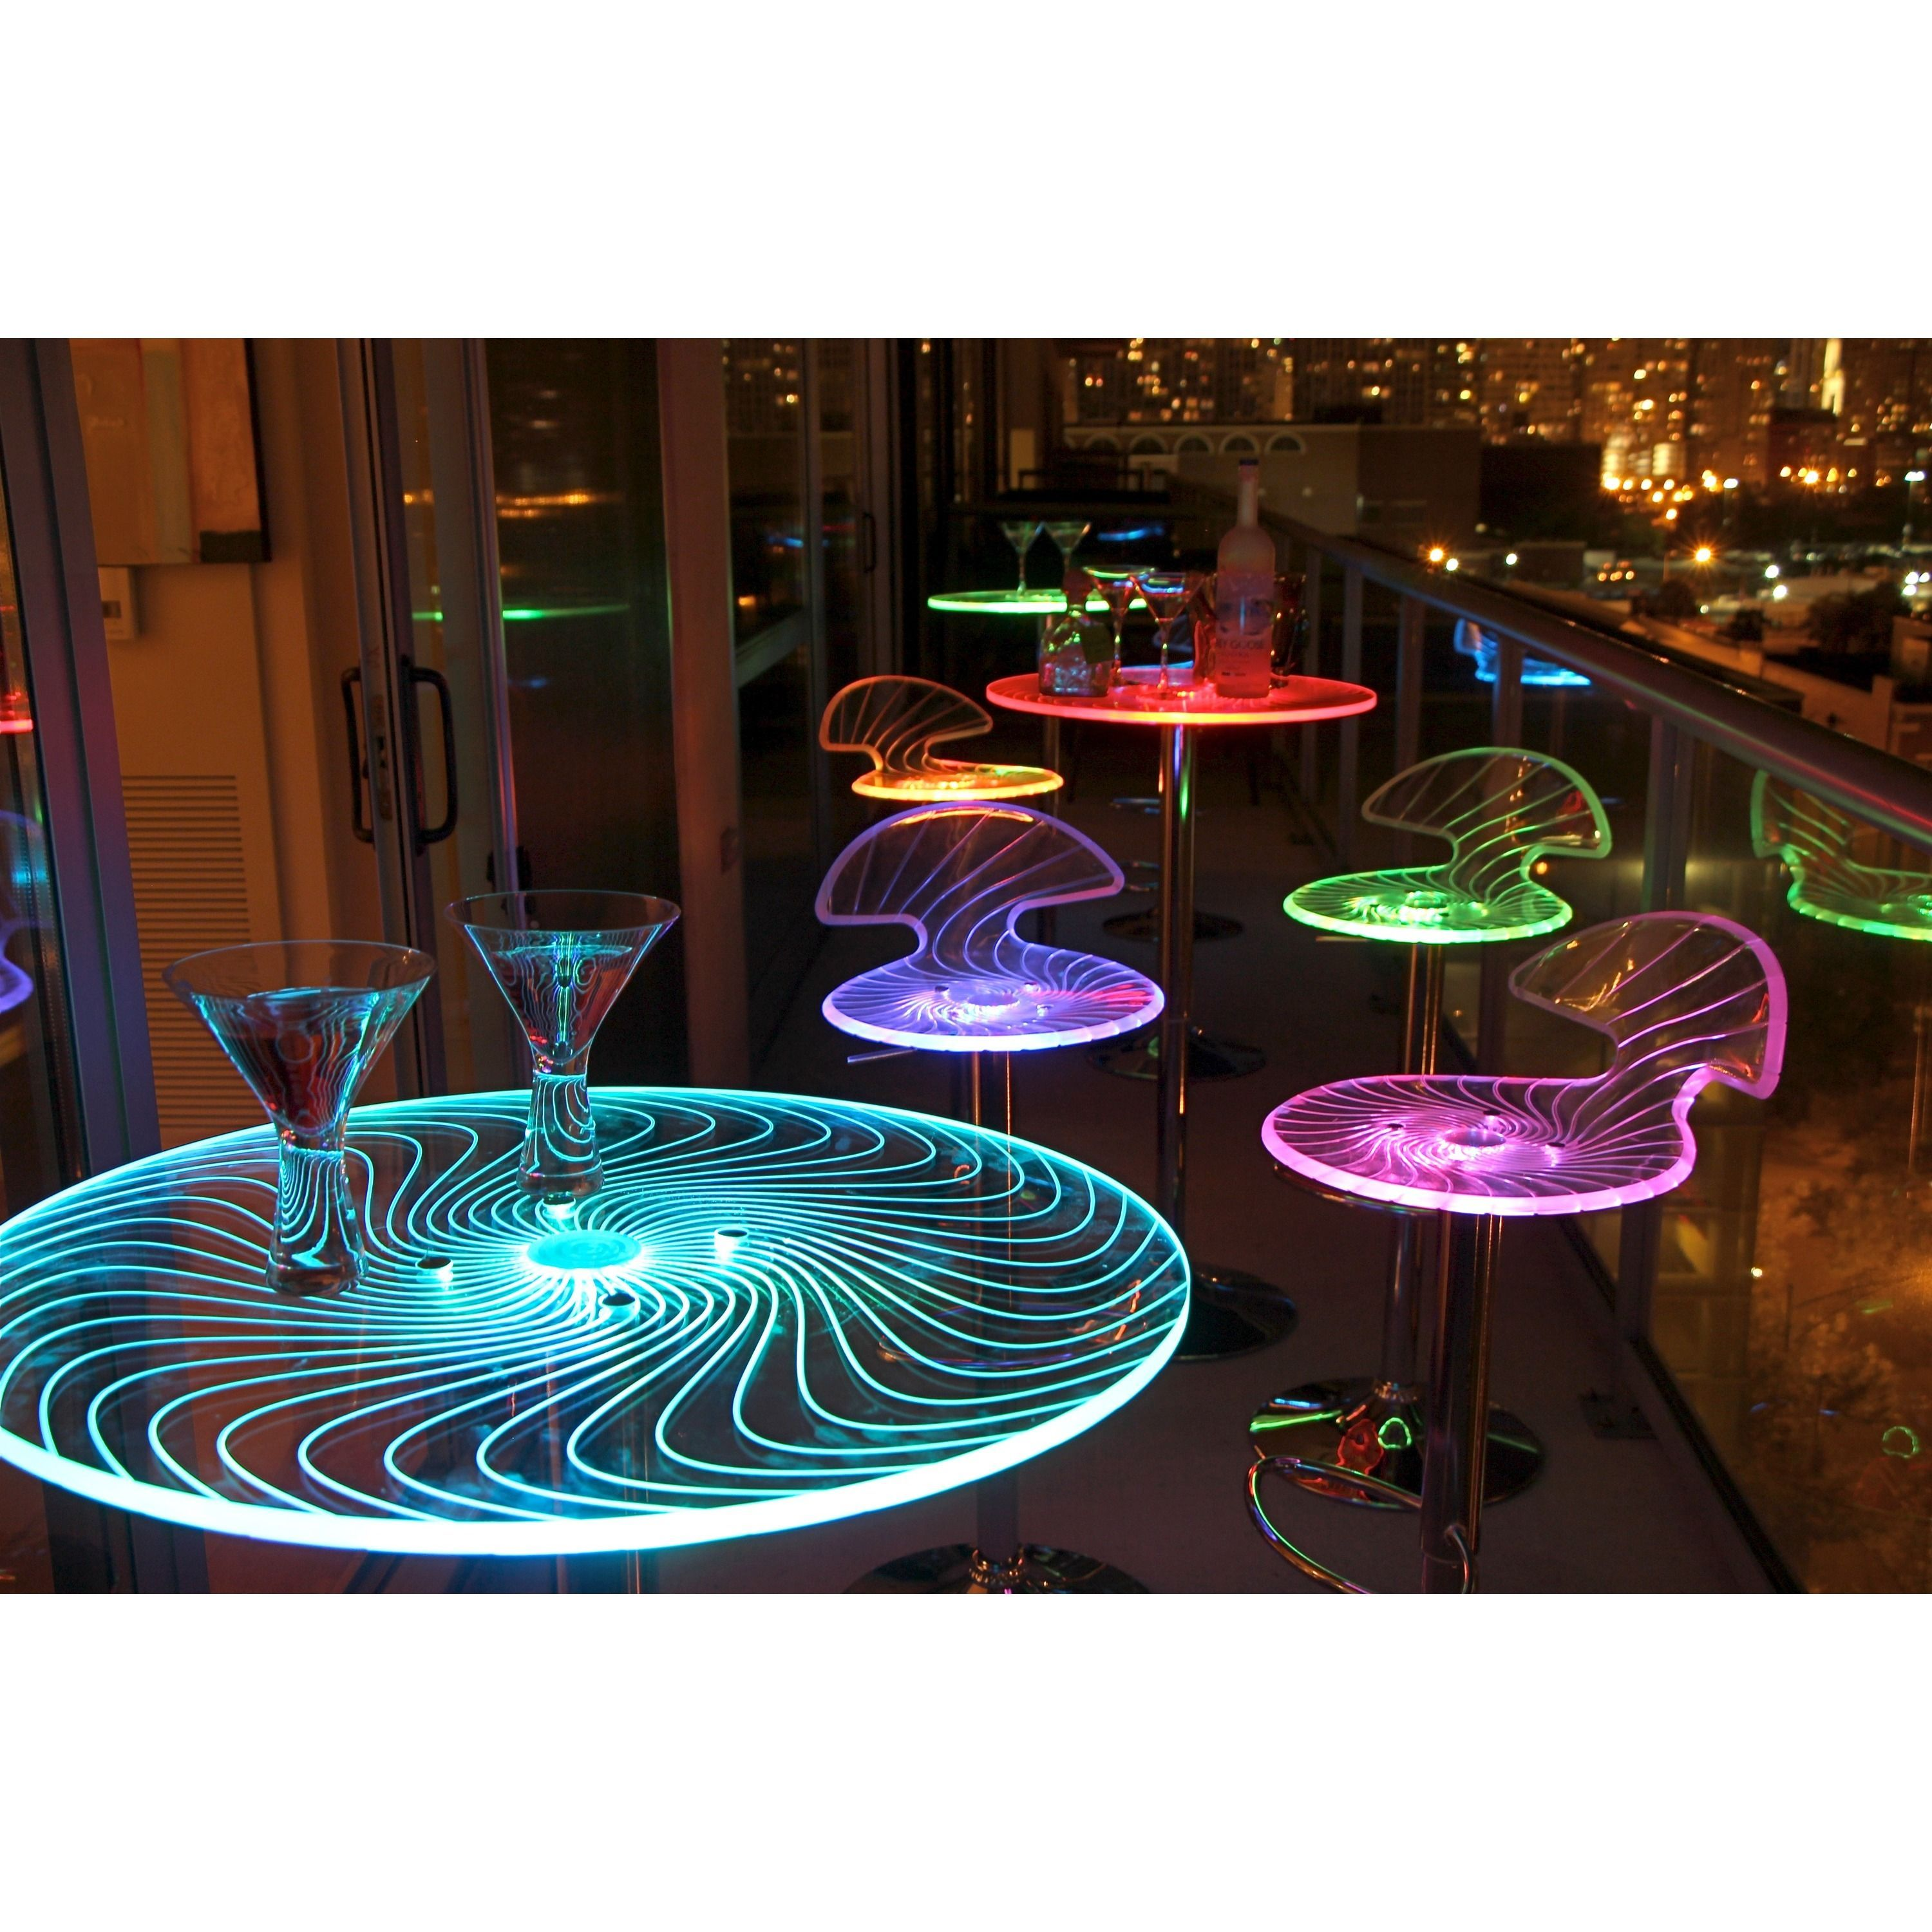 This spyra led light up bar table features a colorful for Acrylic bar top